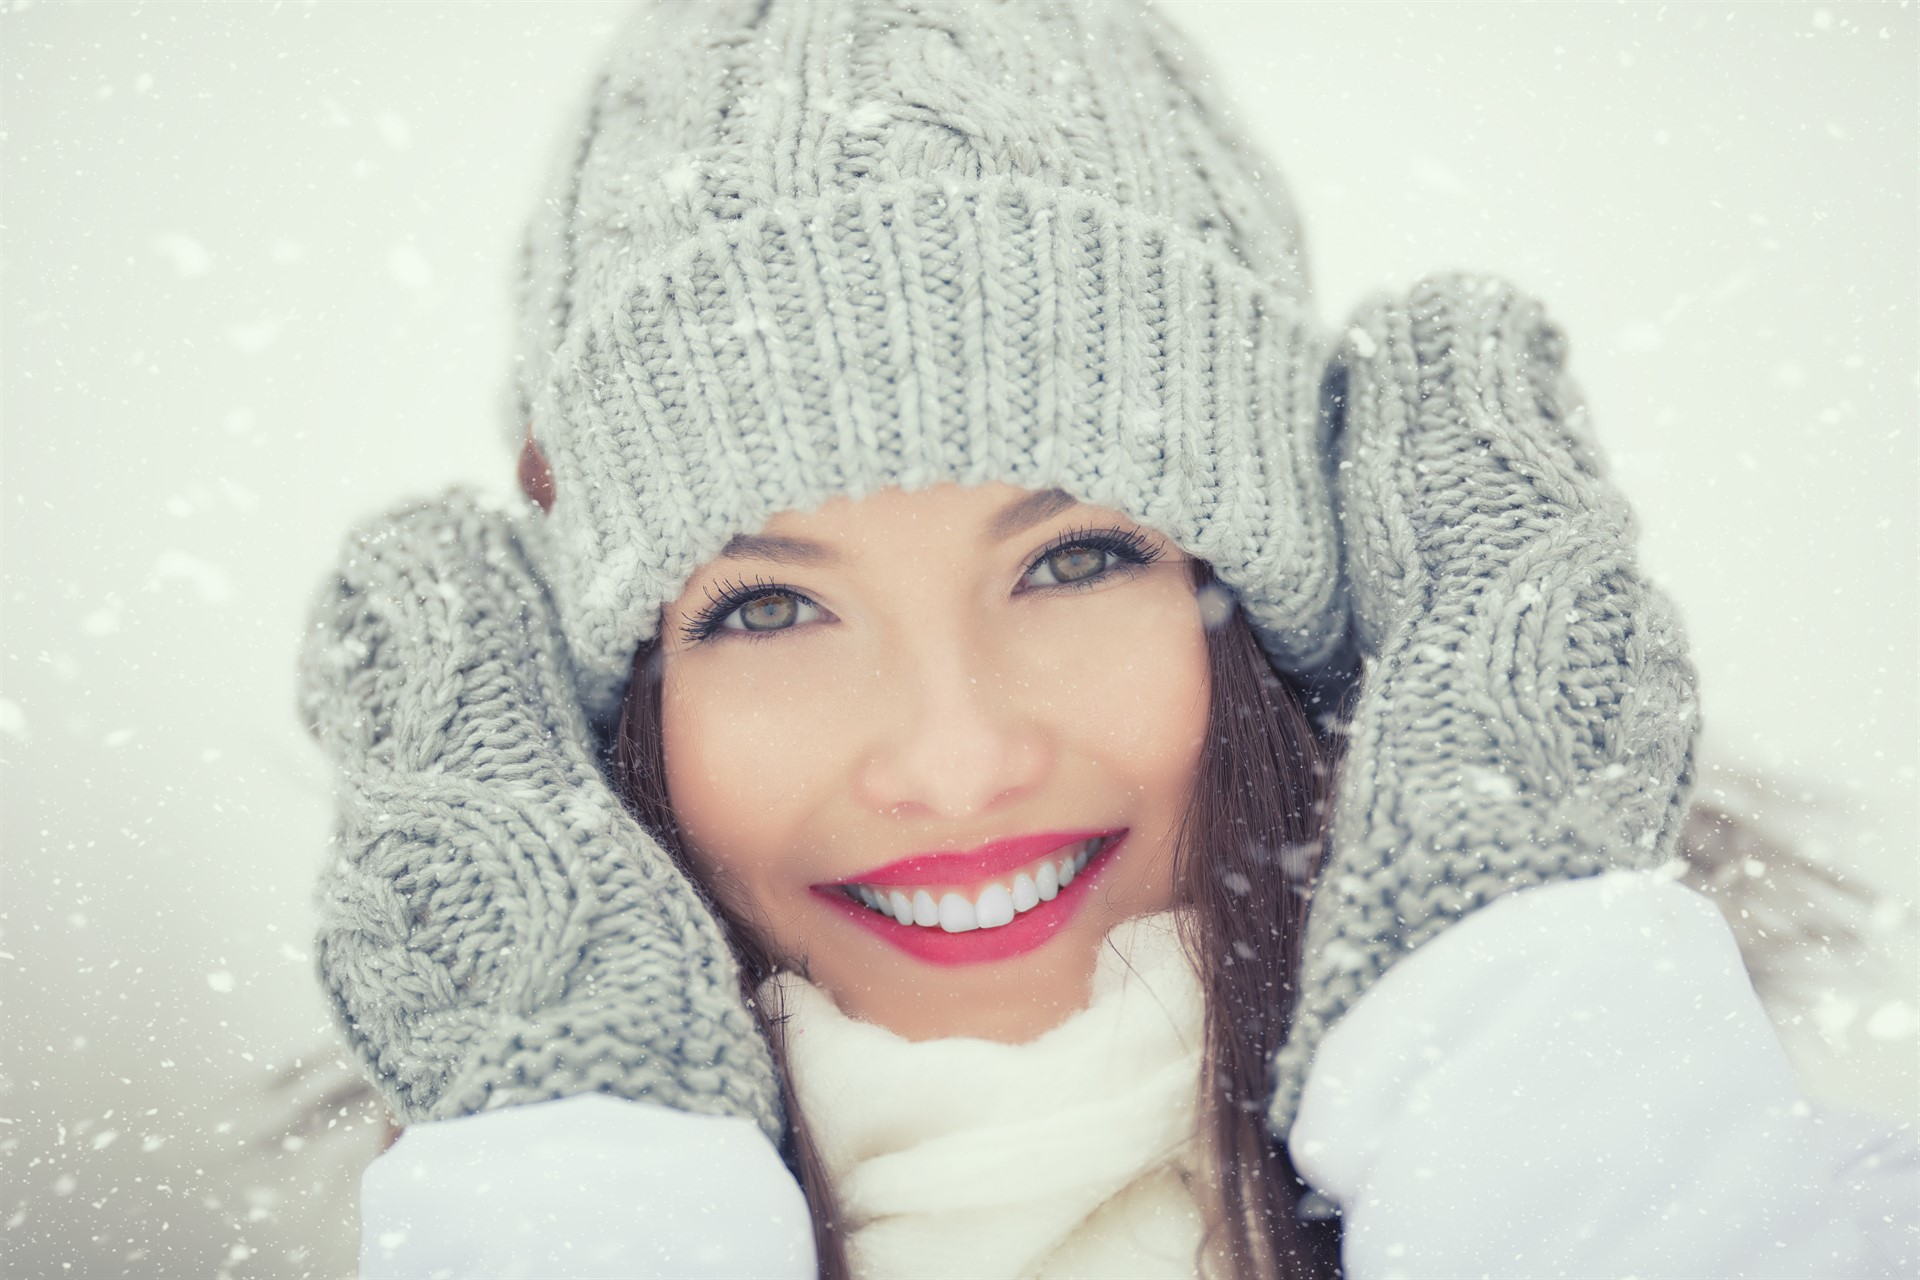 Winter is the best time for skin rejuvenation